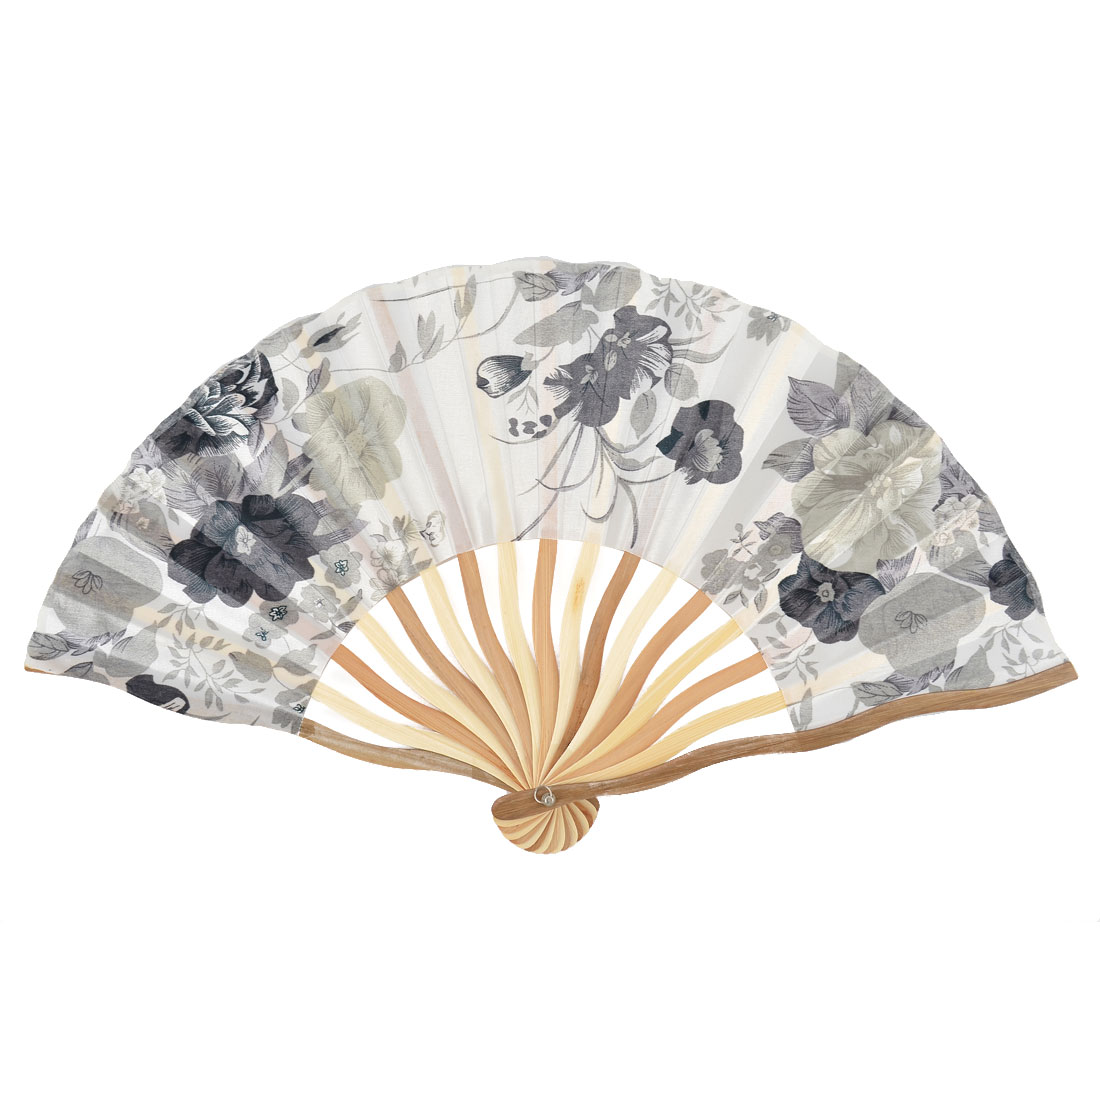 Bamboo Ribs Floral Pattern Summer Cool Portable Folding Hand Fan White w Bag